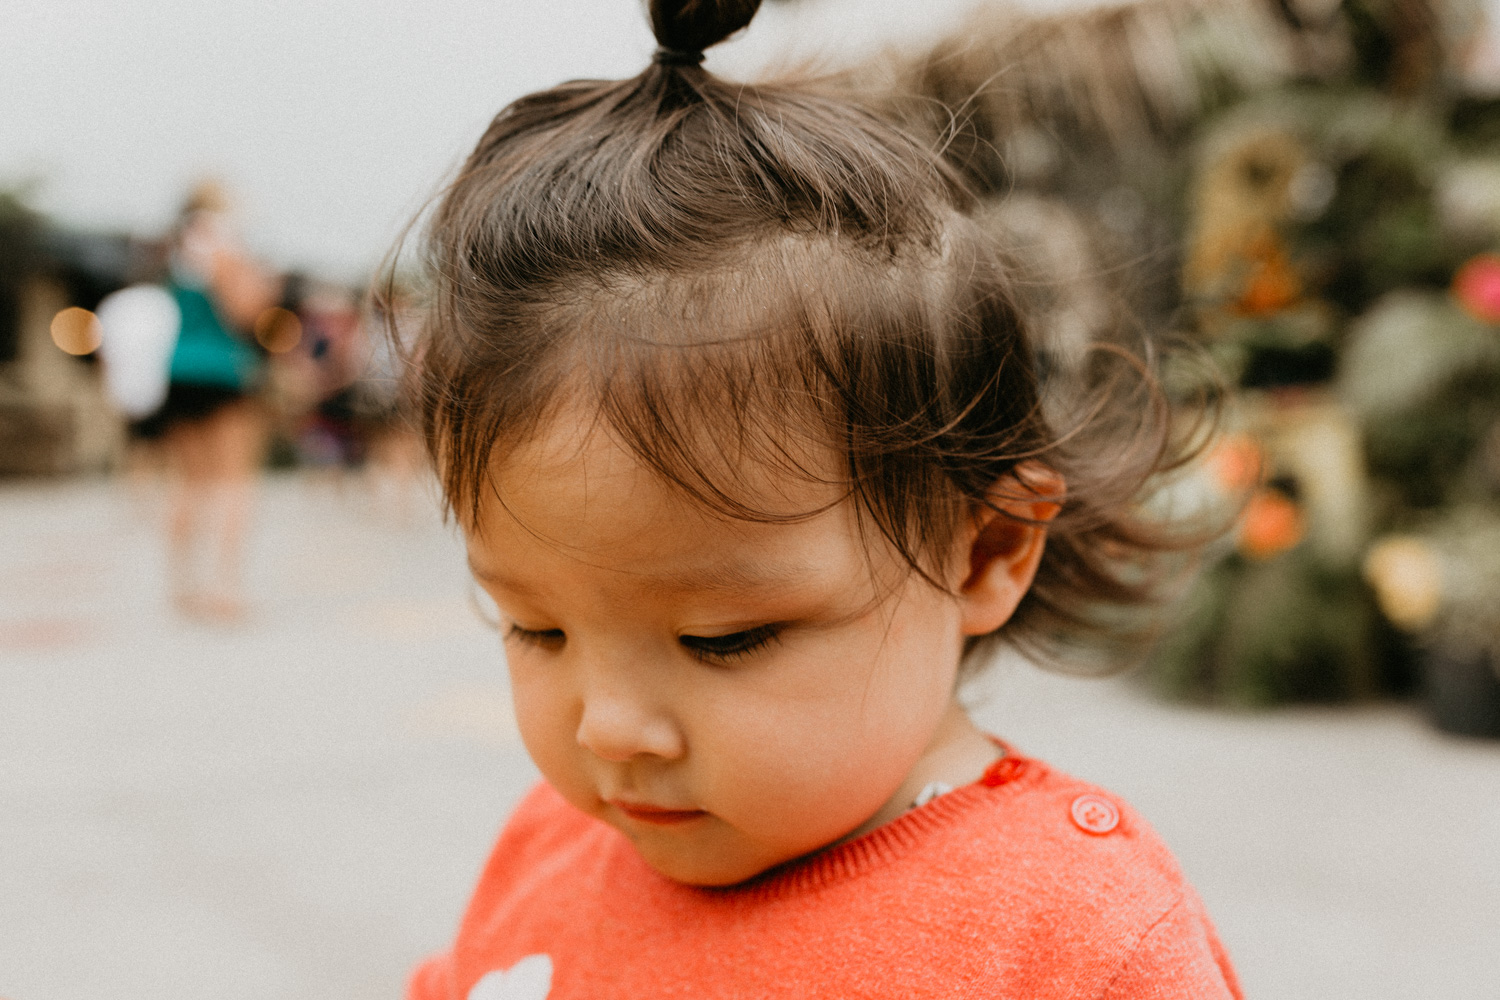 She's definitely my daughter, constantly have stuffs in her hair. Who knows it might be sand, yoghurt, or muesli….